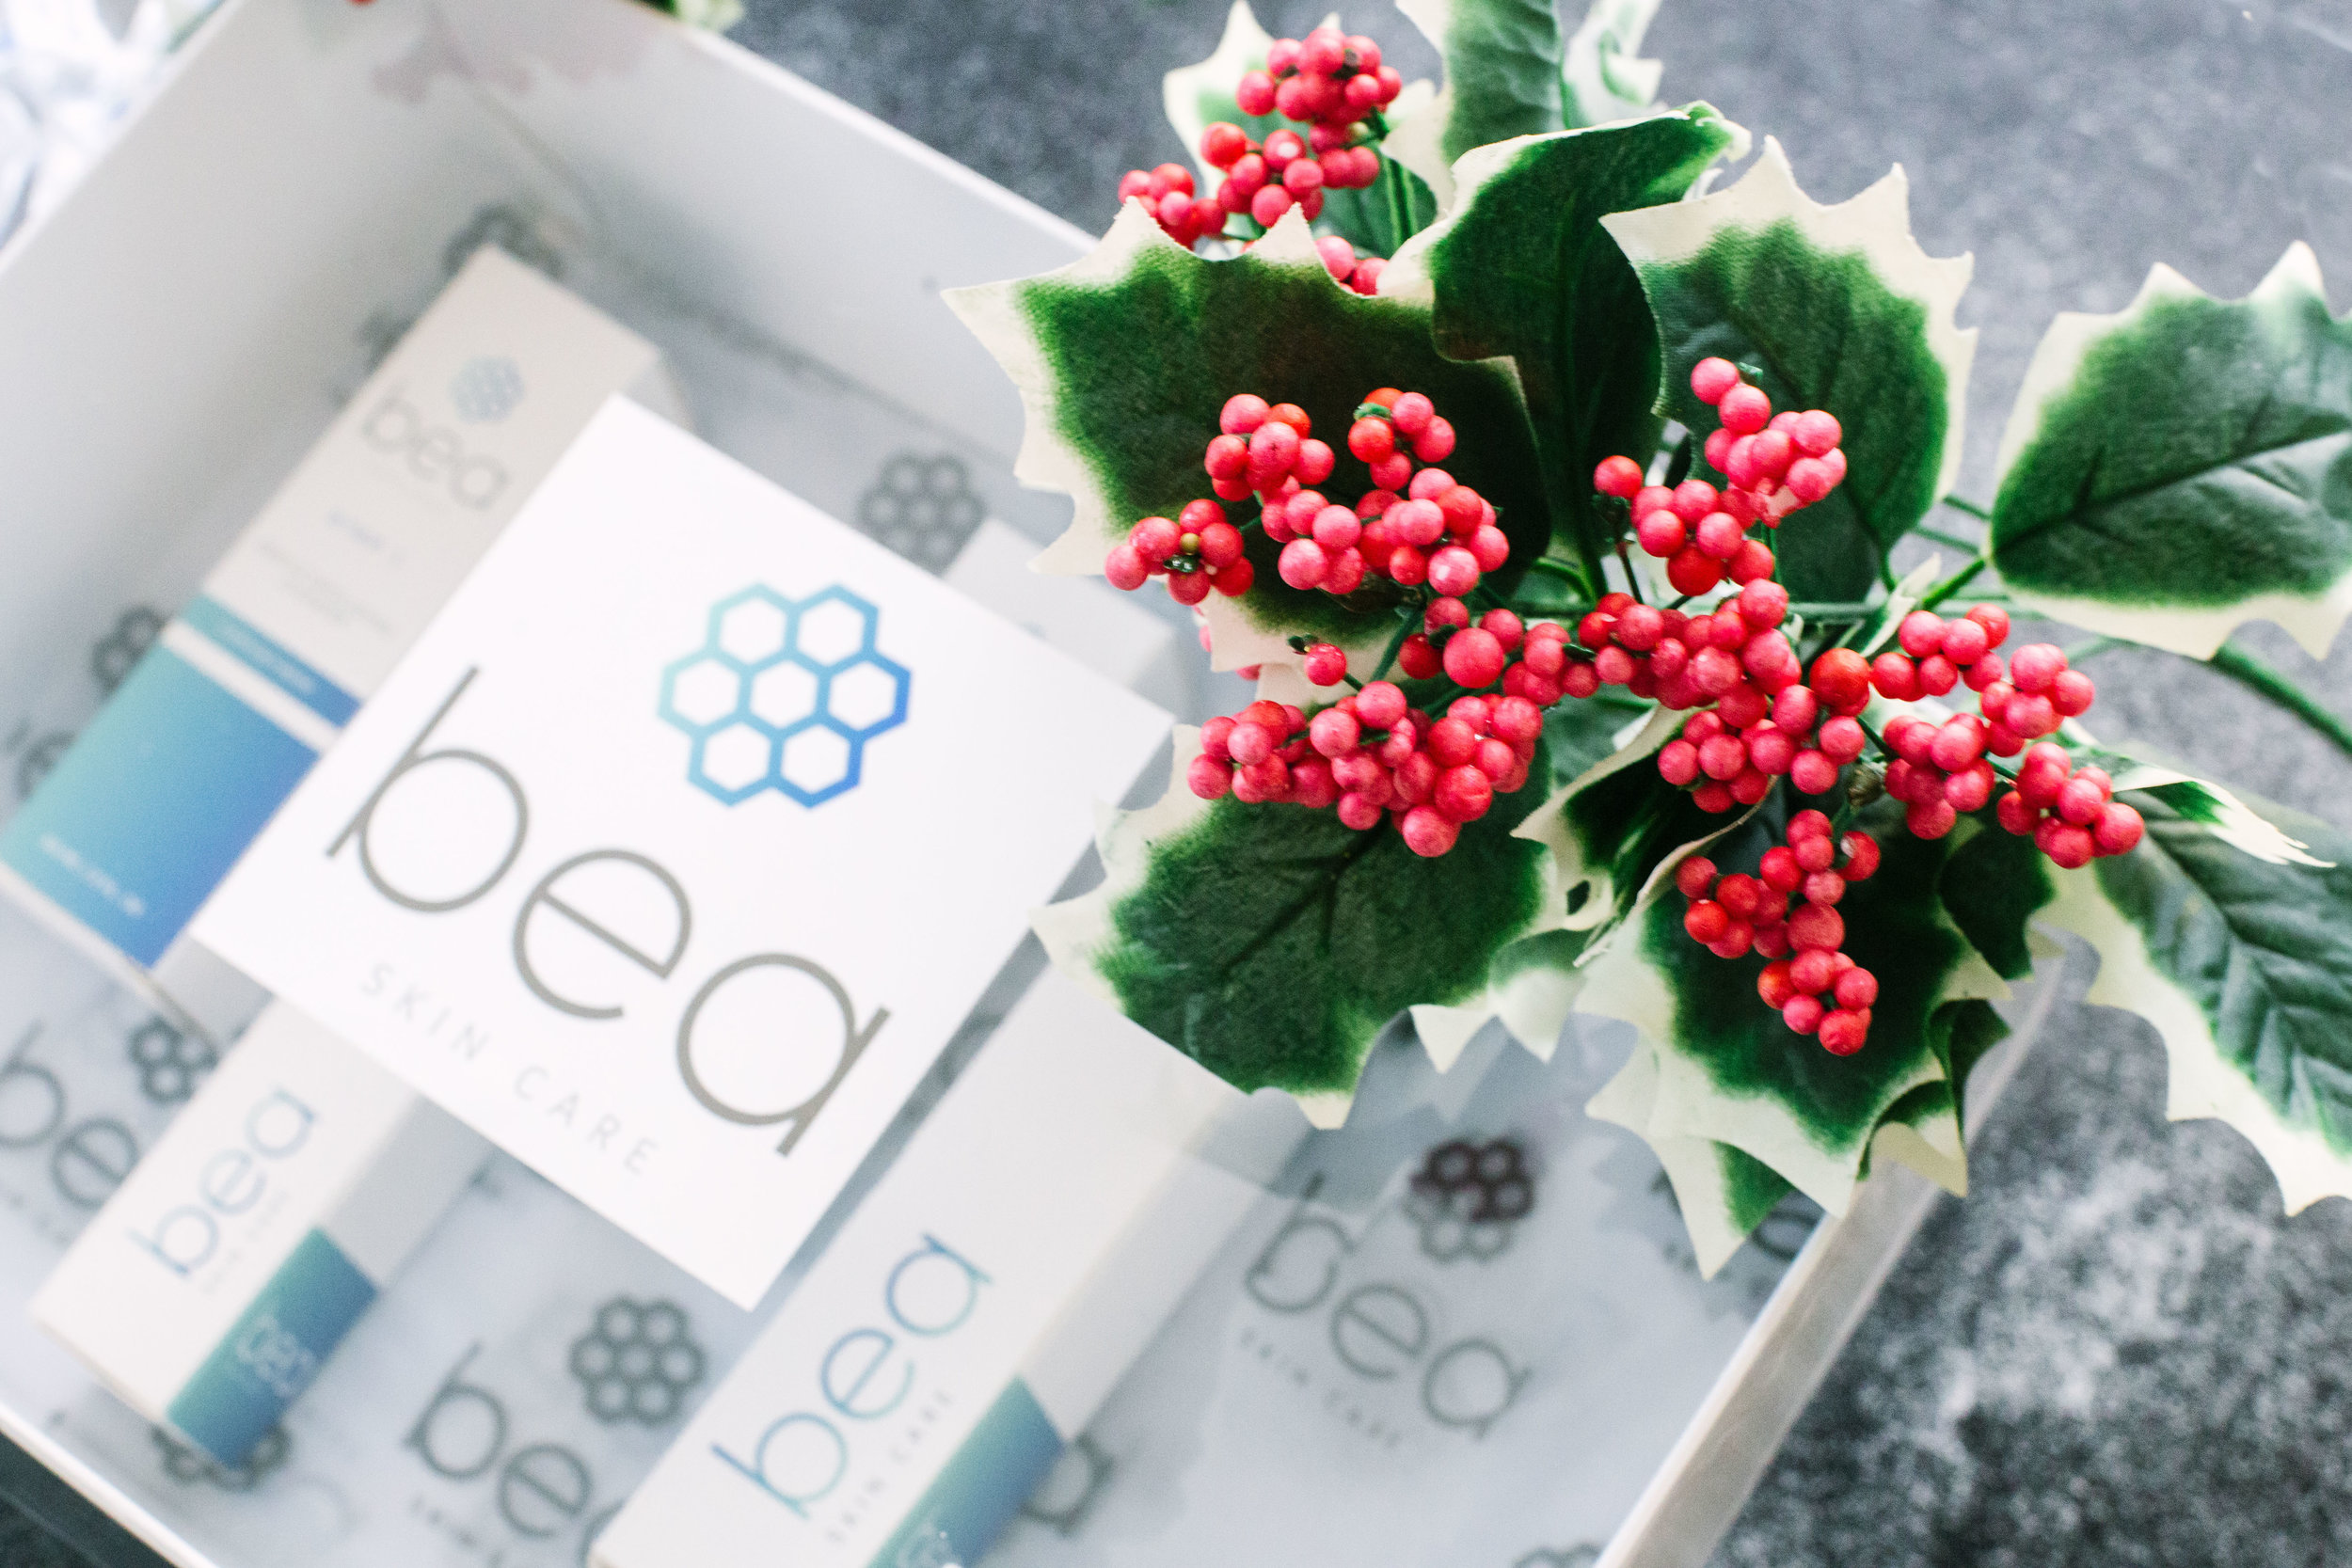 Bea_skin_care_seasonal_Christmas-9.jpg